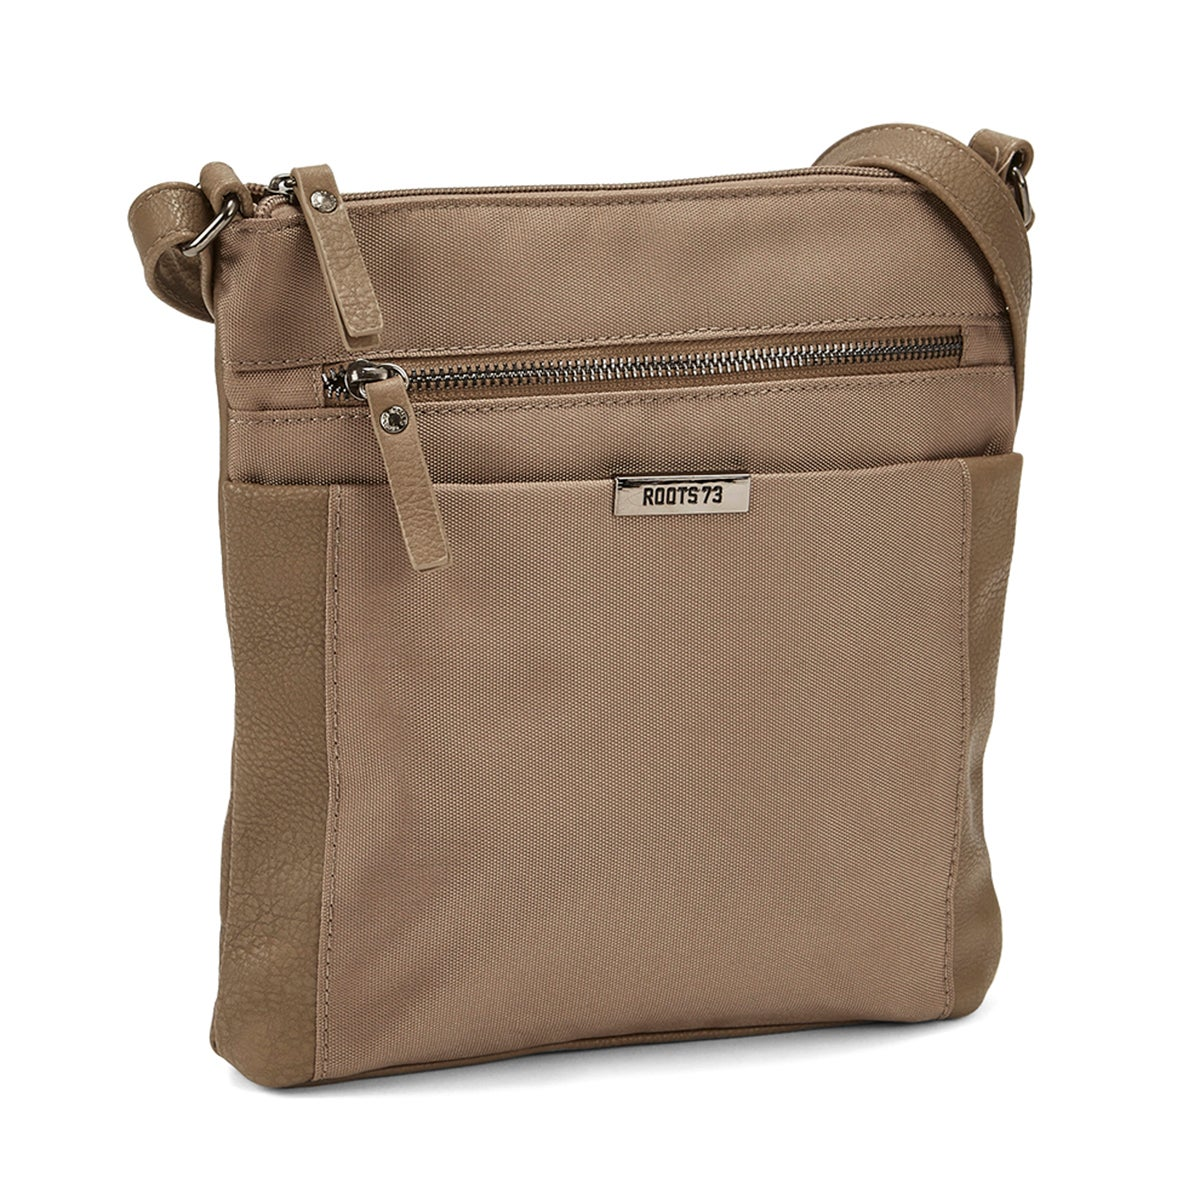 Women's R5134 taupe north south crossbody bag